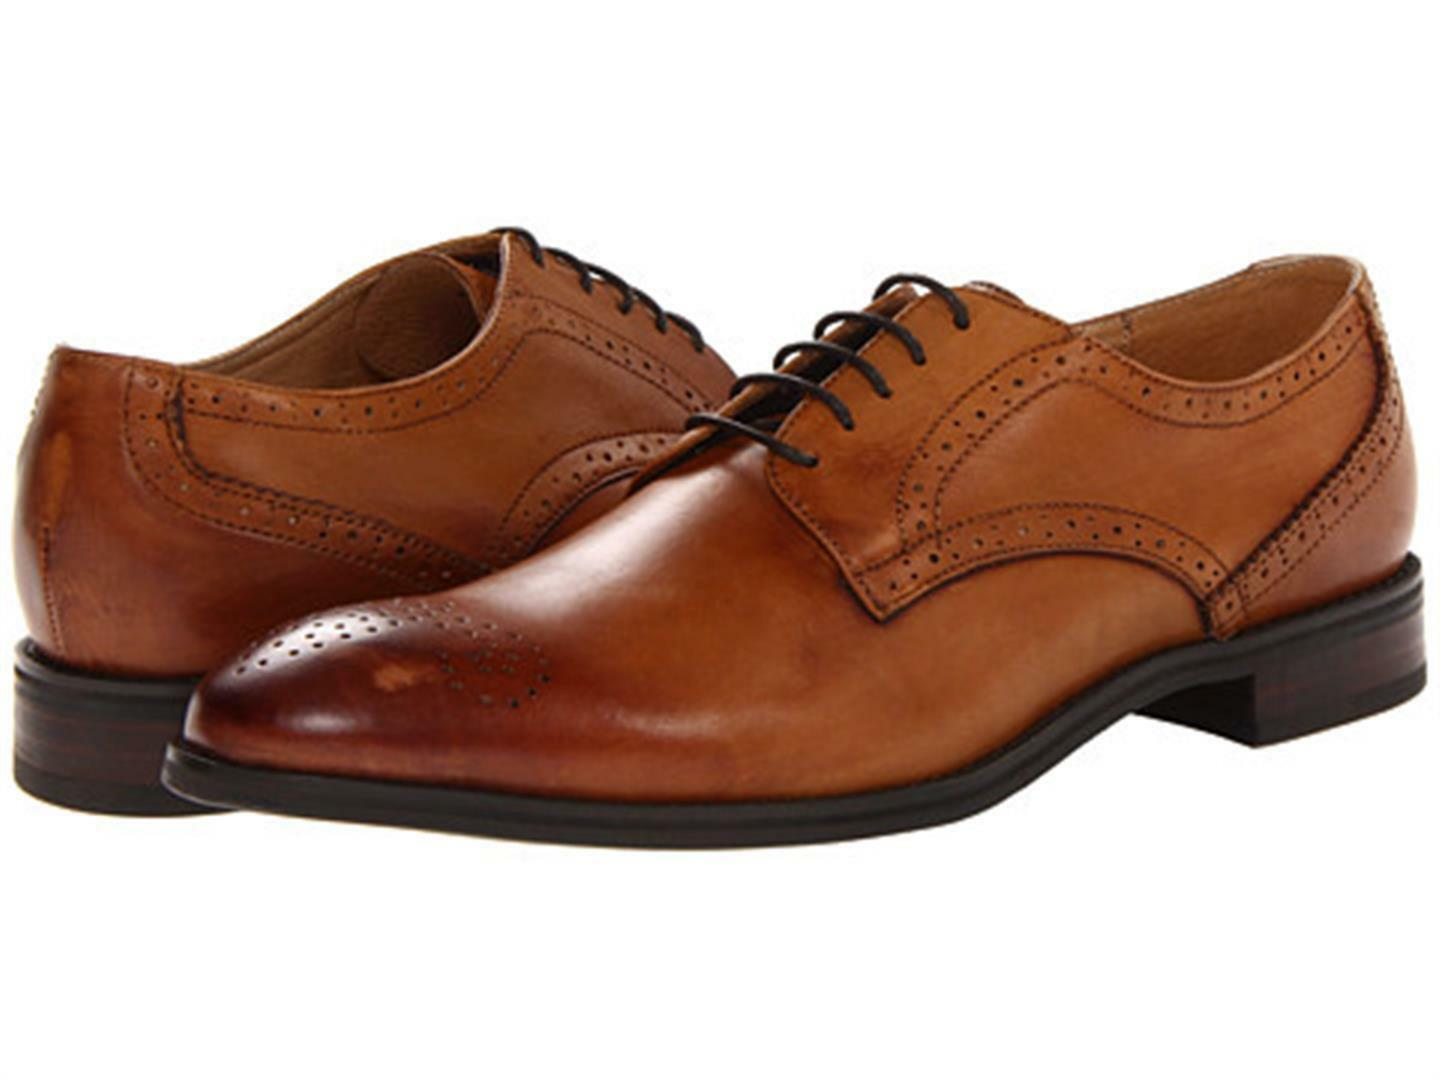 profitto zero New  JD Fisk Uomo Gilby Wingtip Wingtip Wingtip Oxford  -  sz 9 M (NWB)  alla moda